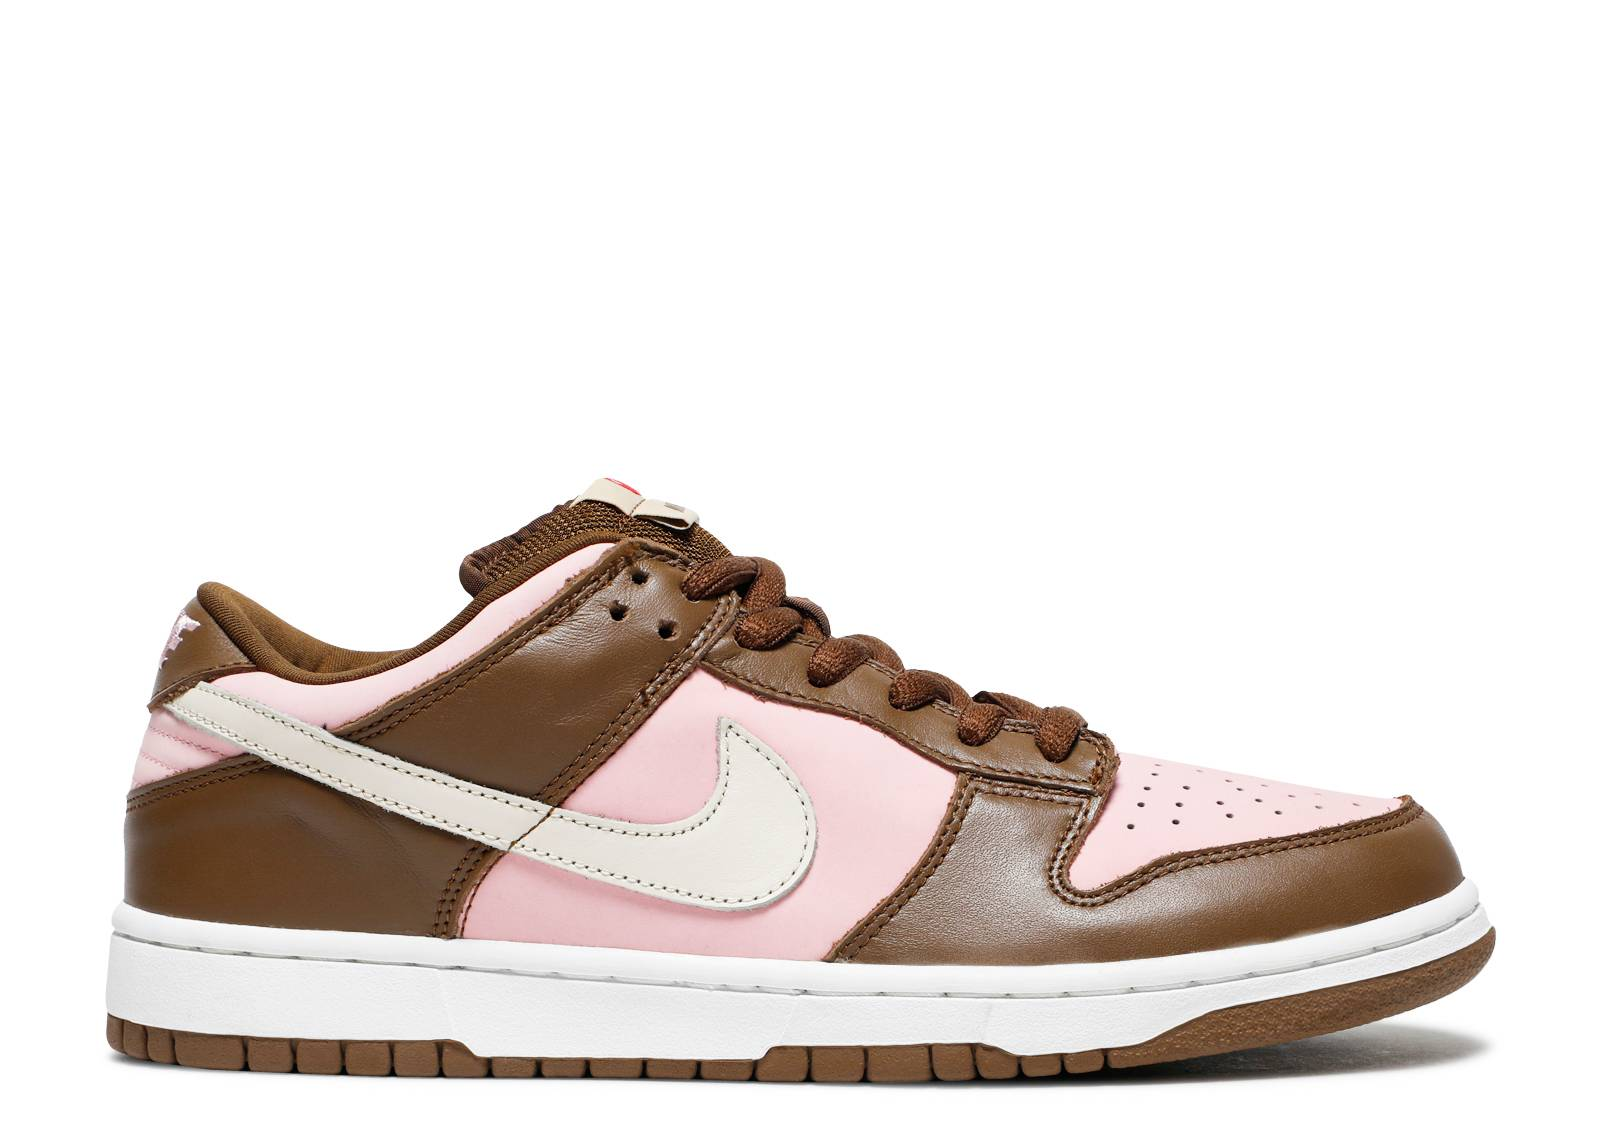 lowest price 9b307 ca200 Dunk Low - Nike Dunks - Nike | Flight Club